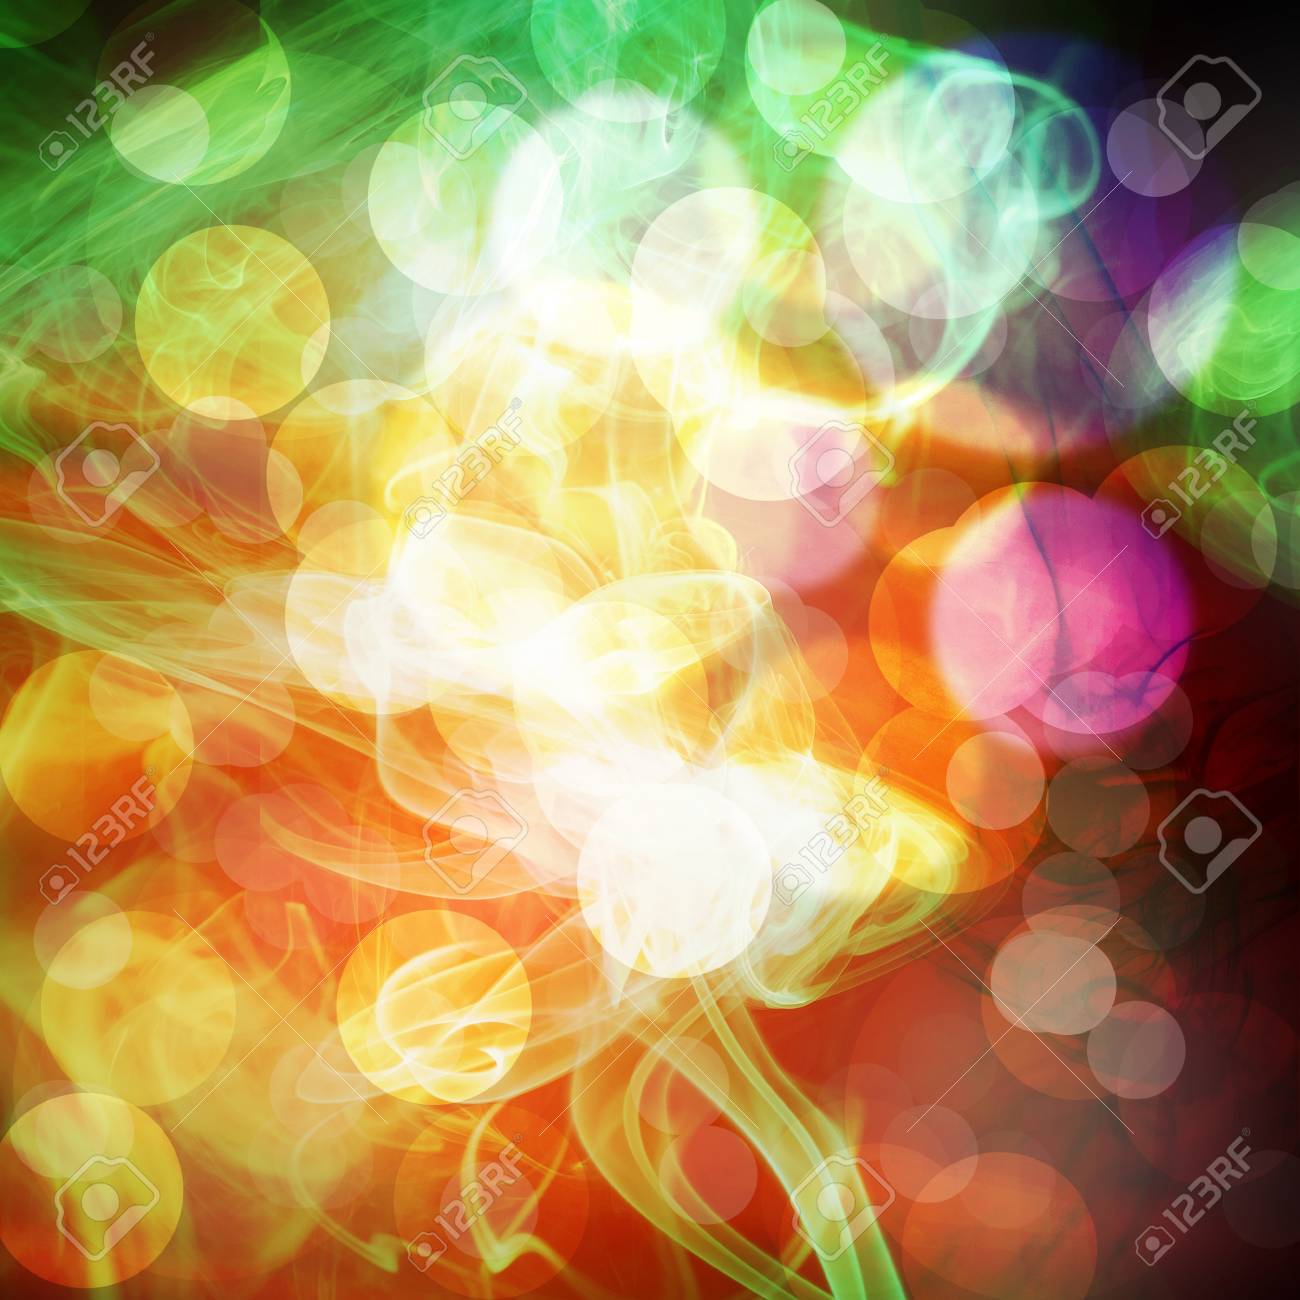 Bokeh mixed with Smoke background Stock Photo - 13633836